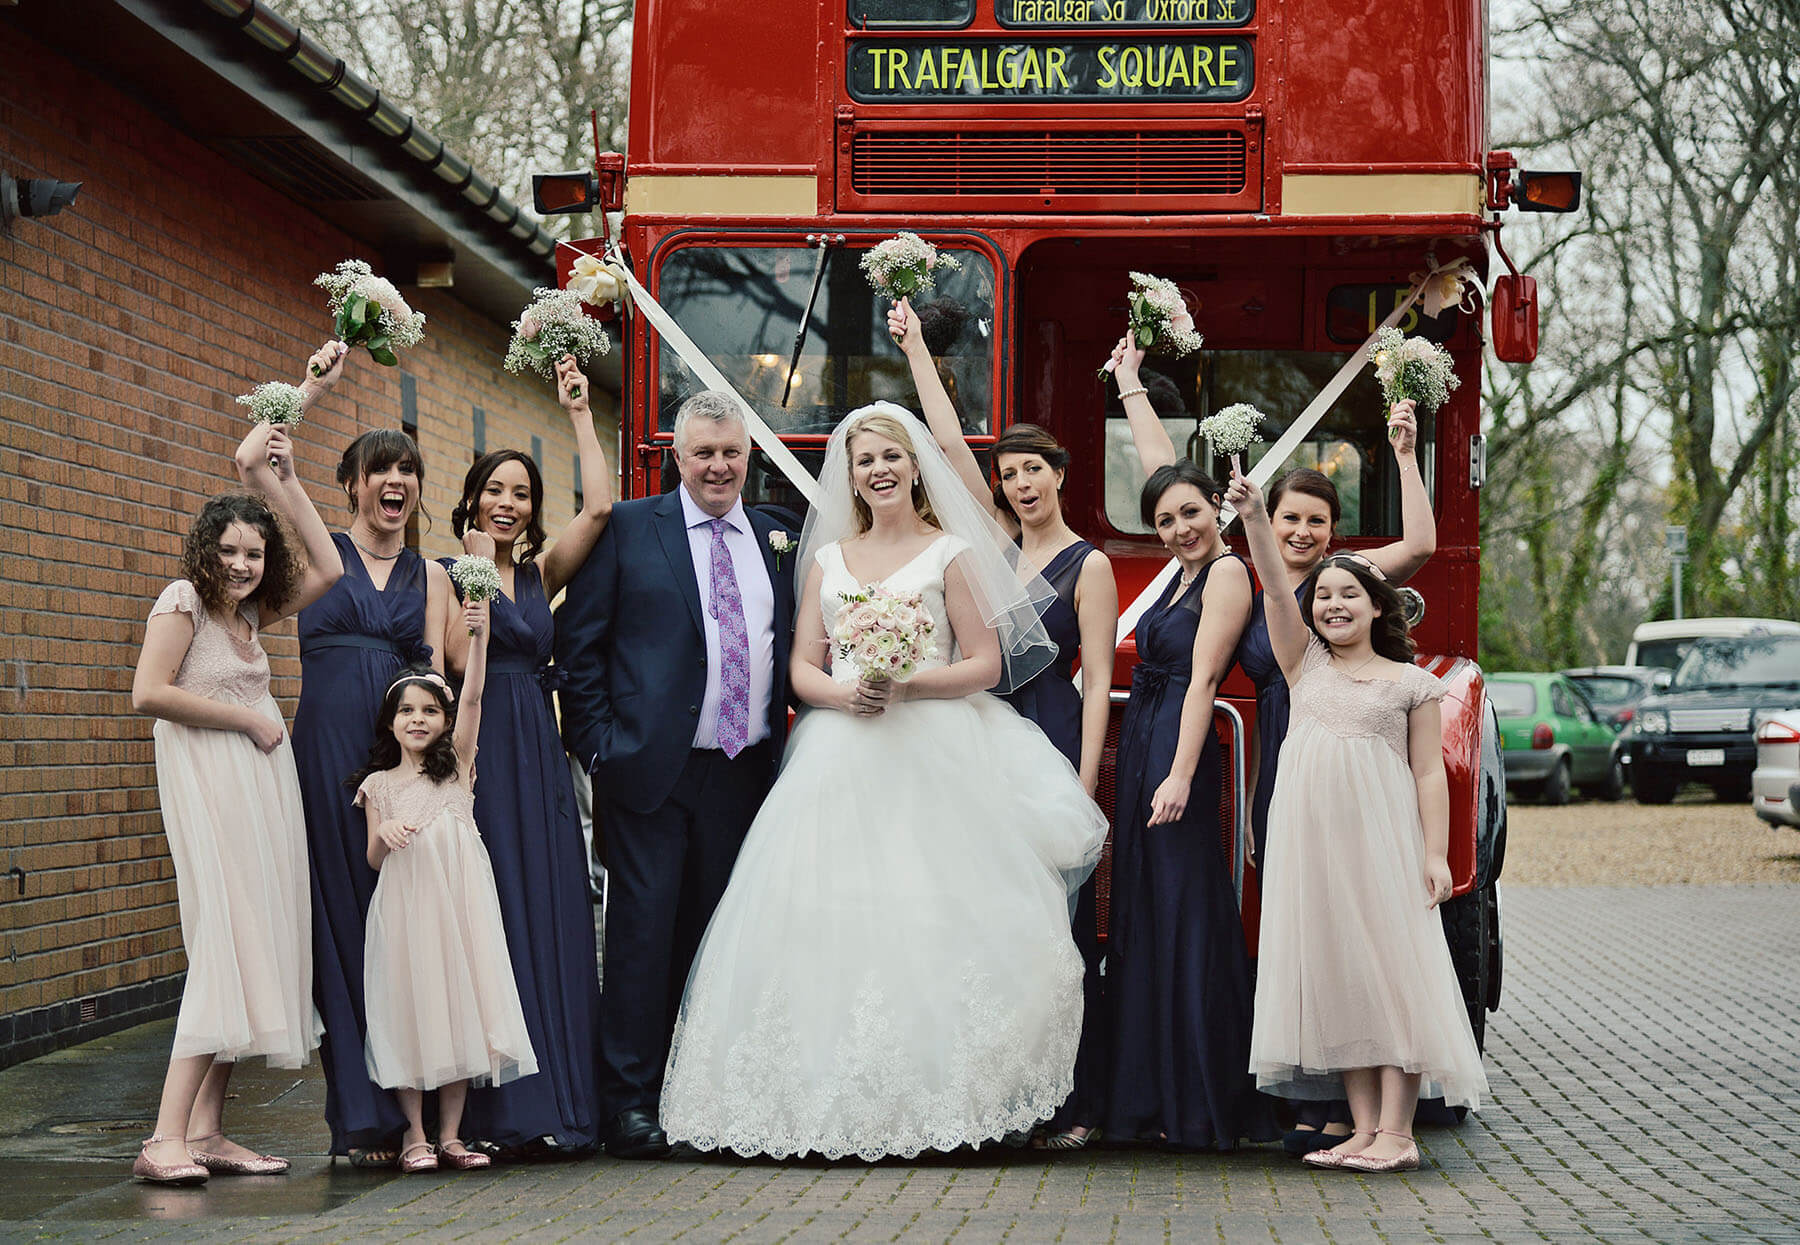 Bride with father and bridal party stood in front of a London bus holding bouquets on wedding day